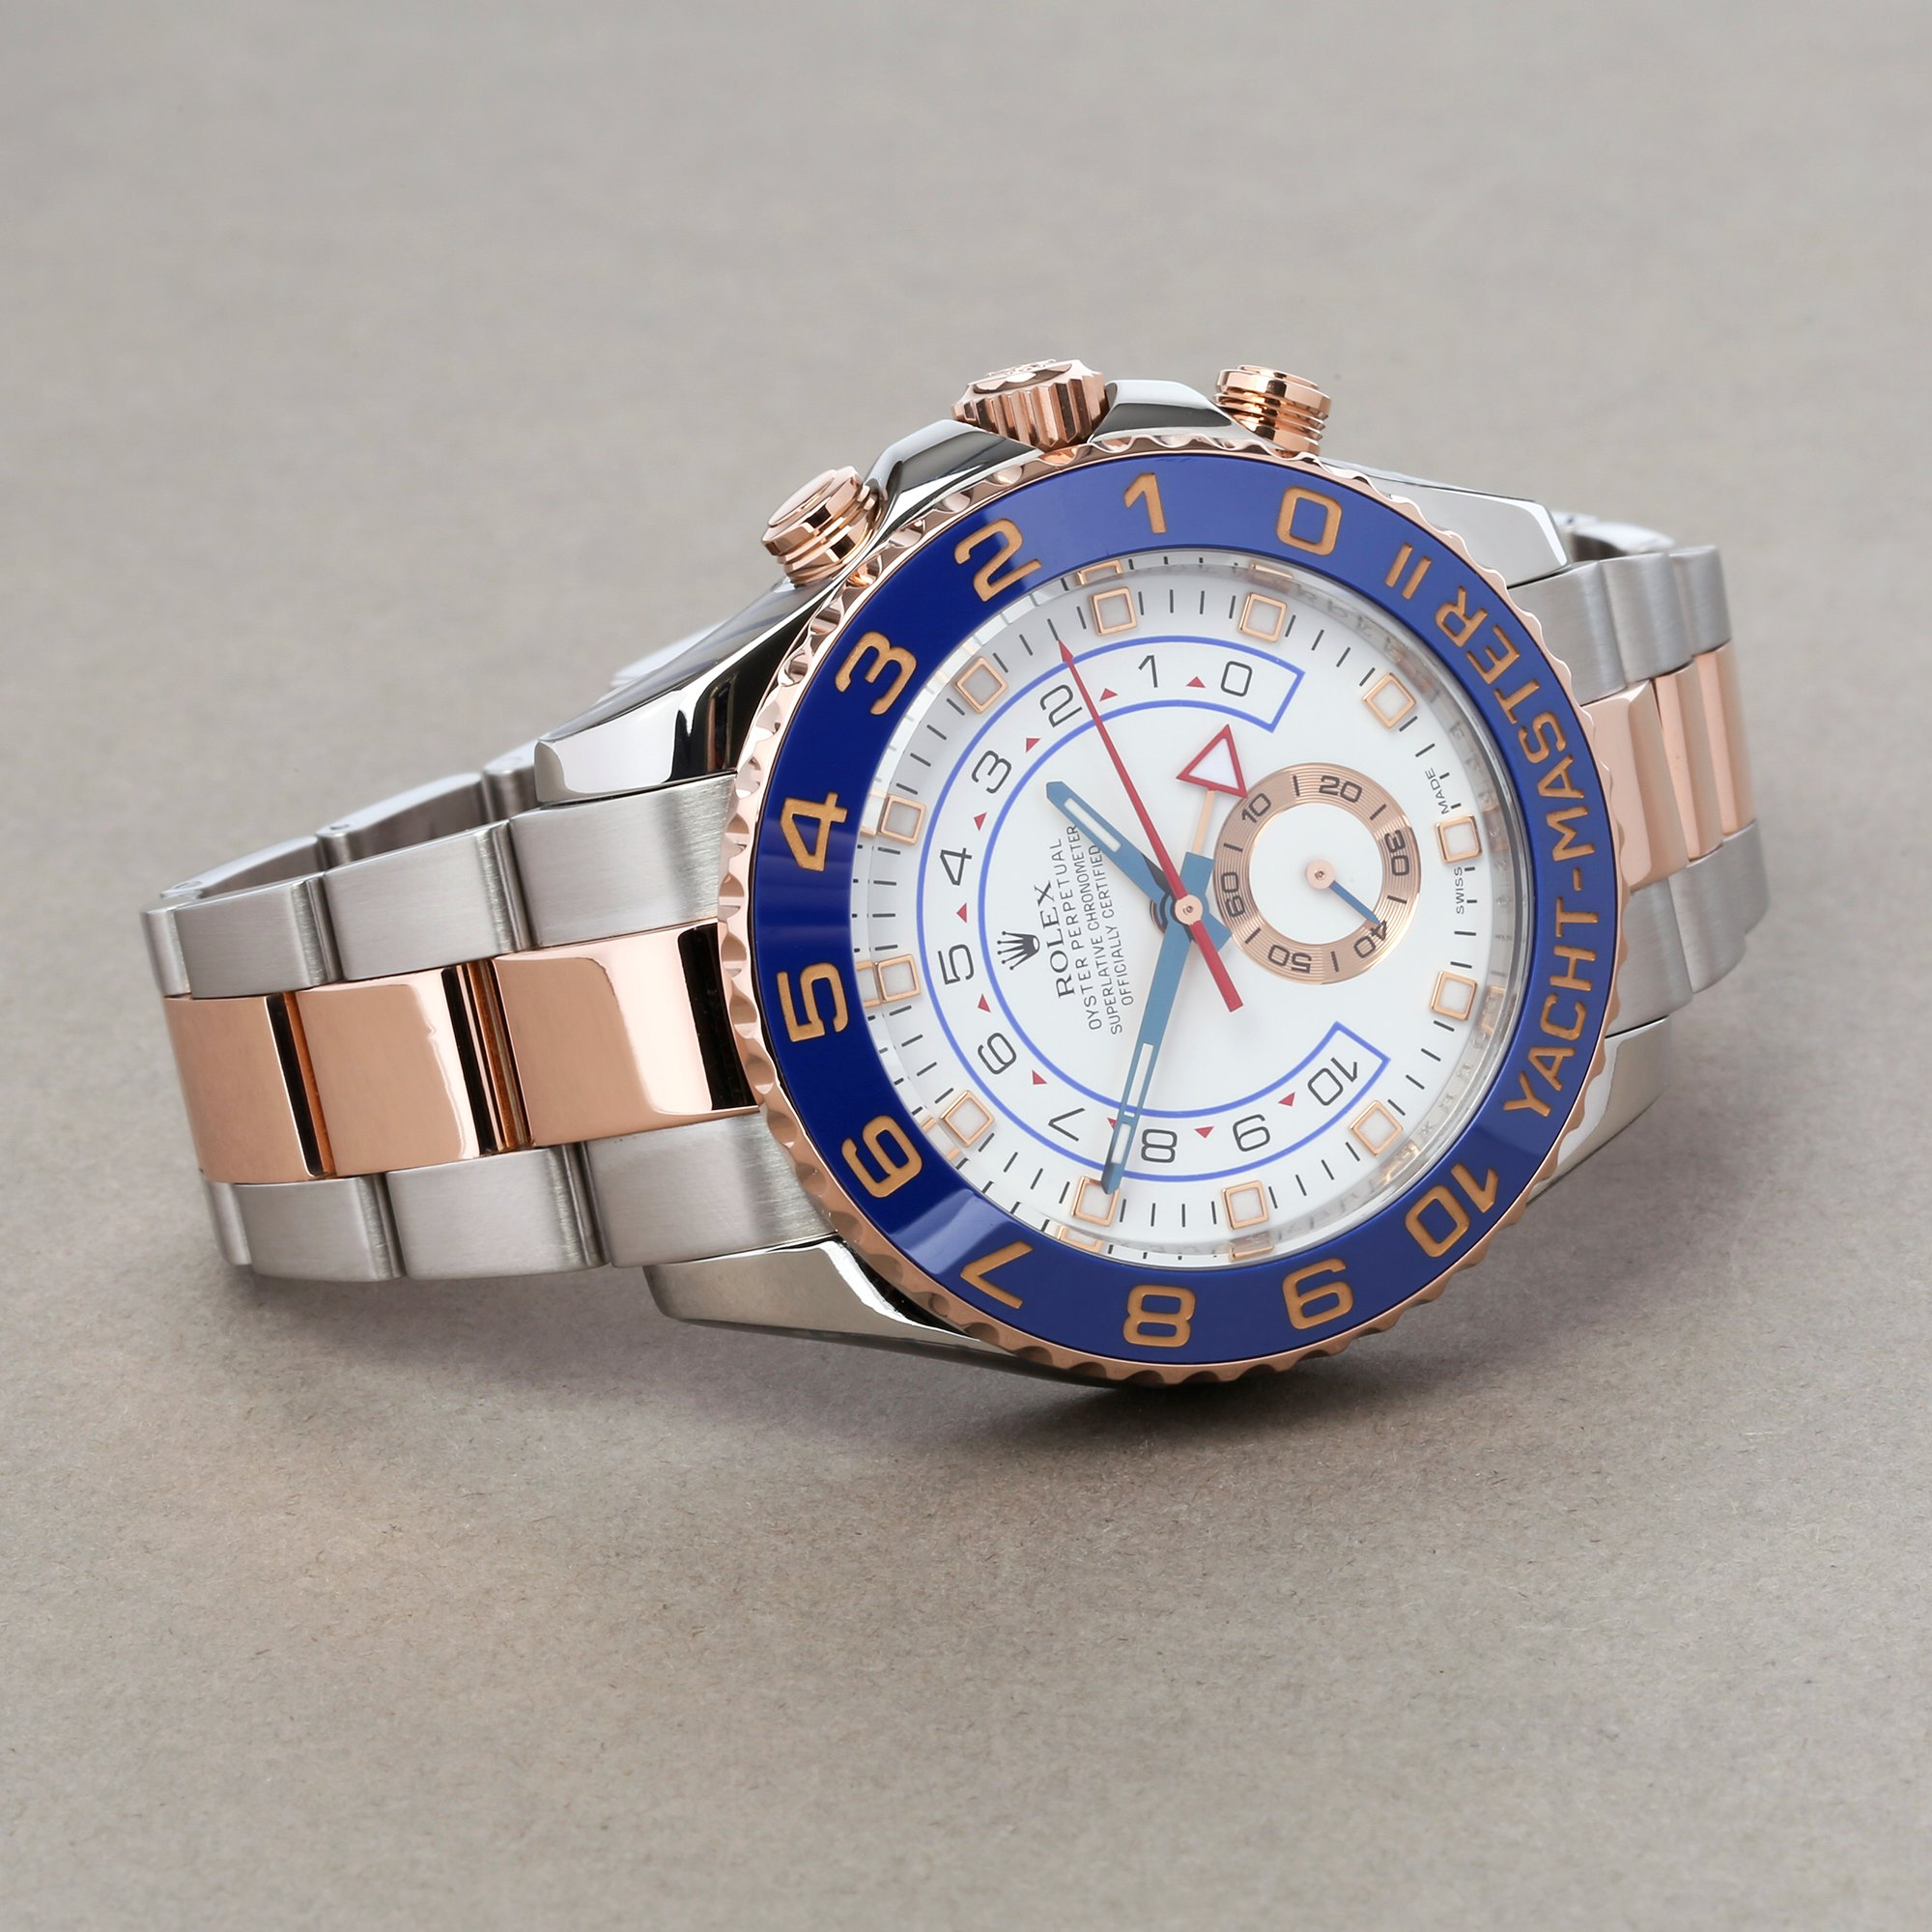 Rolex Yacht-Master II 116681 Men's Rose Gold & Stainless Steel Watch - Image 9 of 10